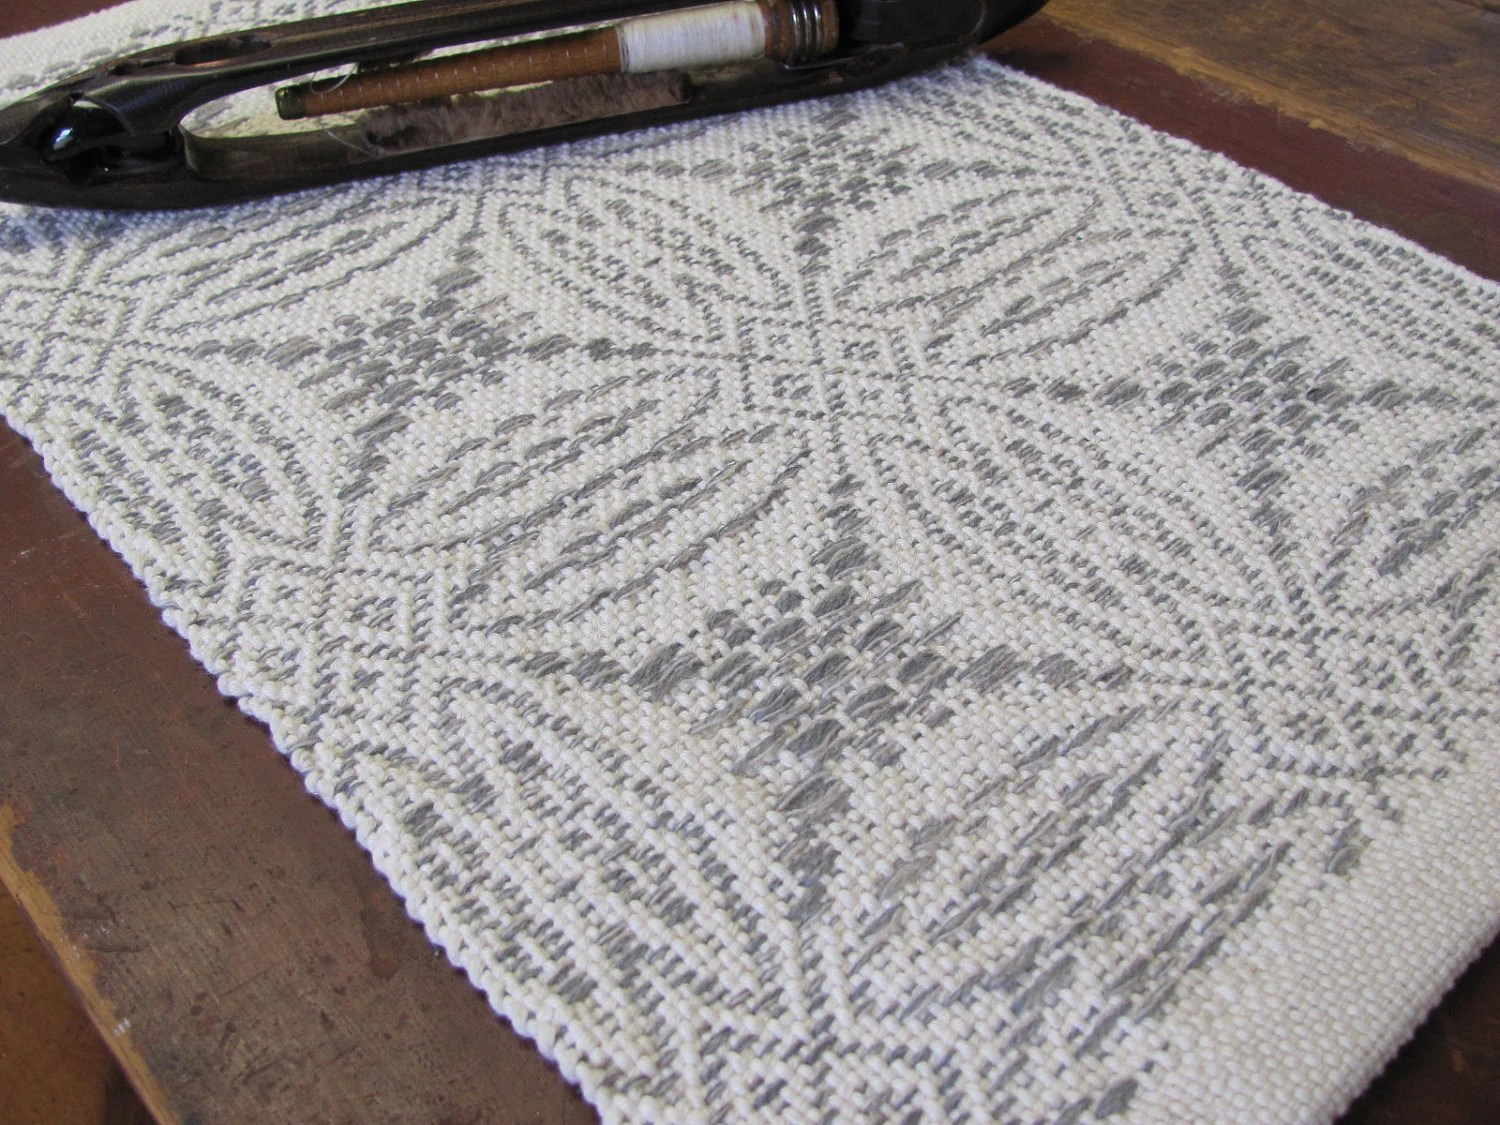 Handwoven Table Runner in Natural Ivory White & Stone Gray Heather Cotton and Wool Traditional Overshot